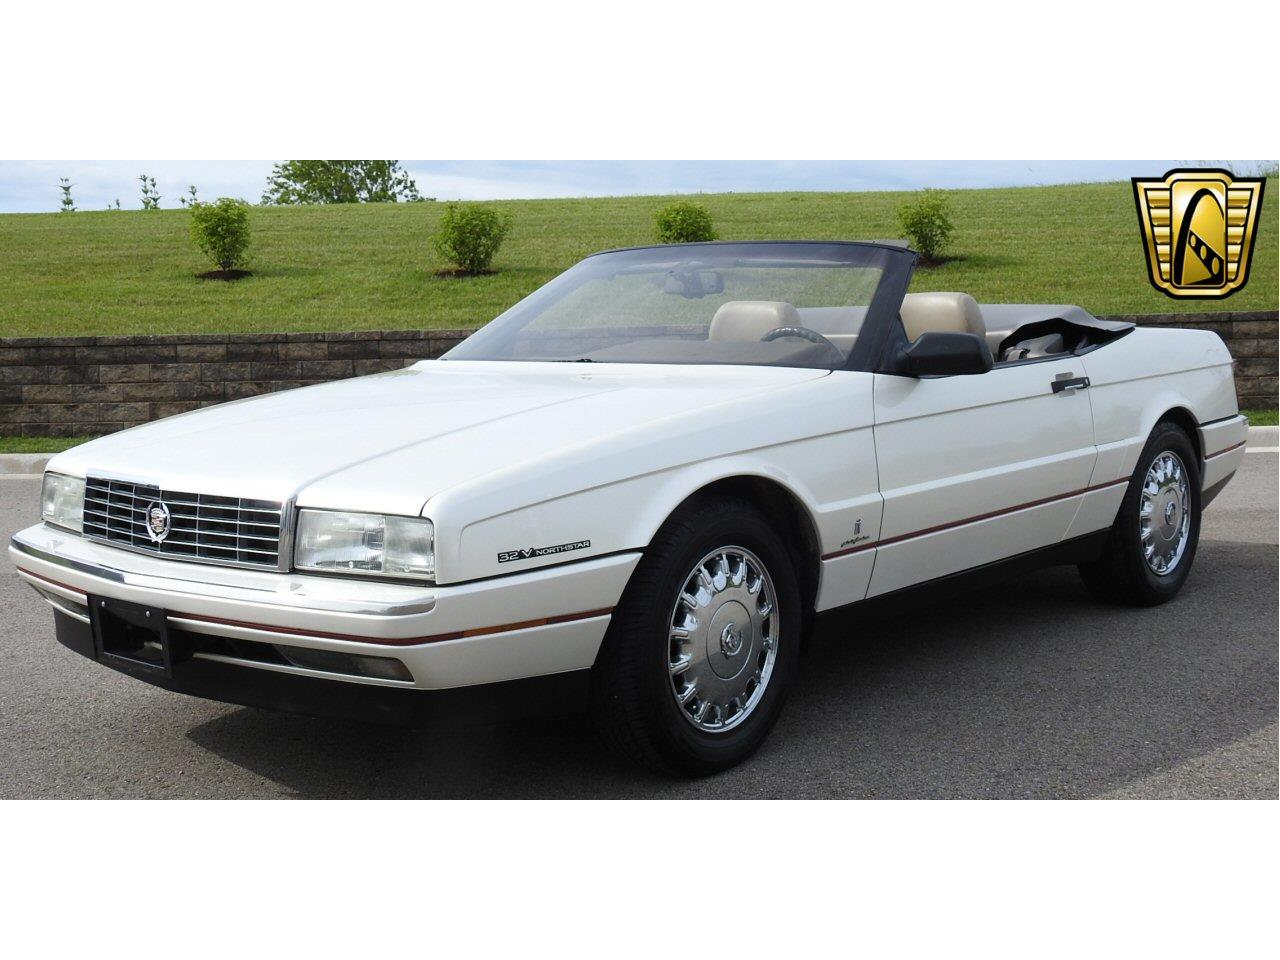 Large Picture of '93 Cadillac Allante located in Kenosha Wisconsin - $10,995.00 Offered by Gateway Classic Cars - Milwaukee - LF3Y